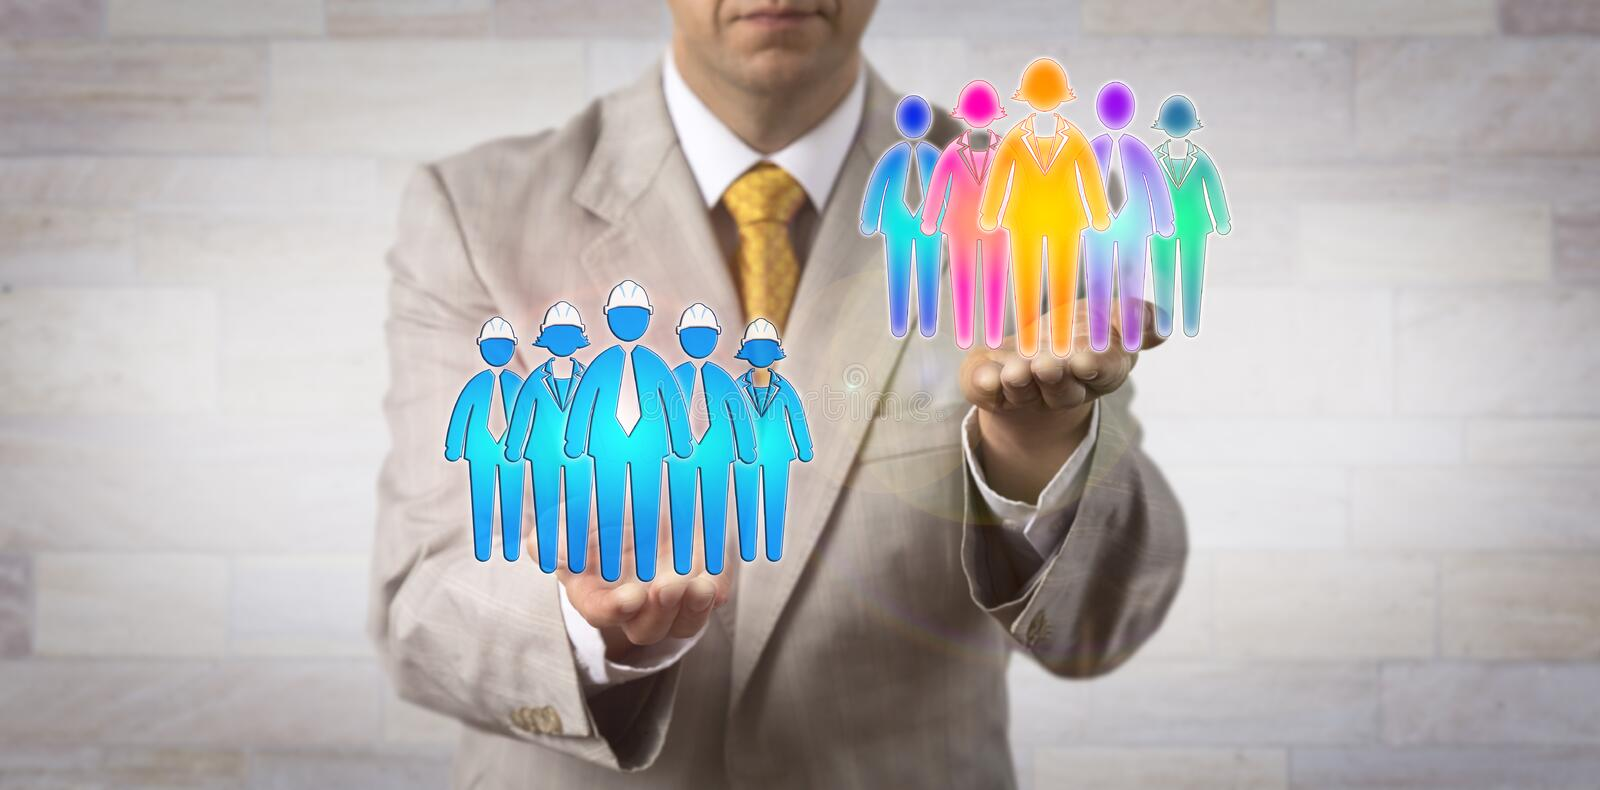 Man Raising Multicultural Team Over Blue Collars royalty free stock photography